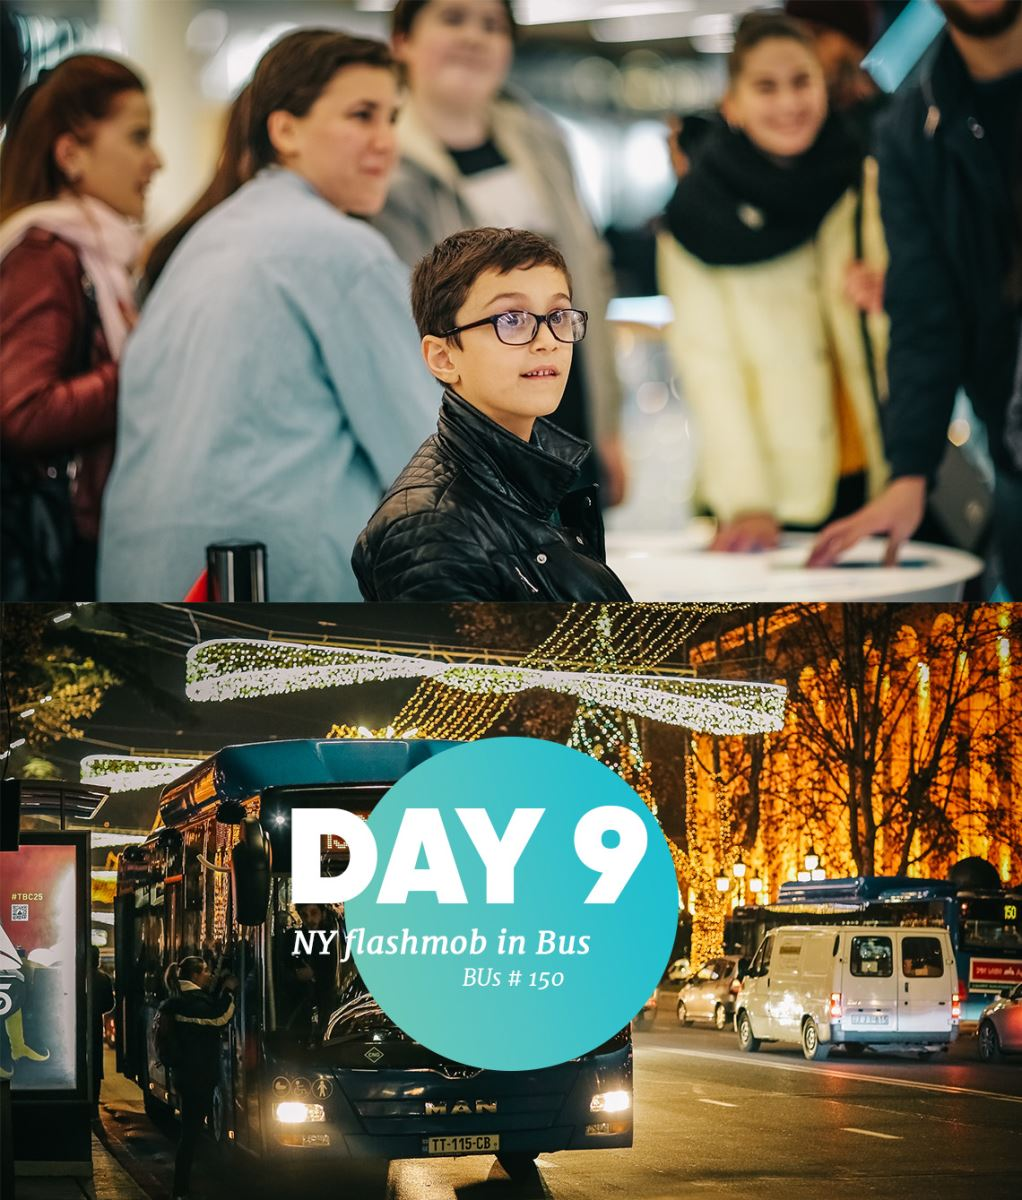 Galleria Tbilisi New years campaign day 9